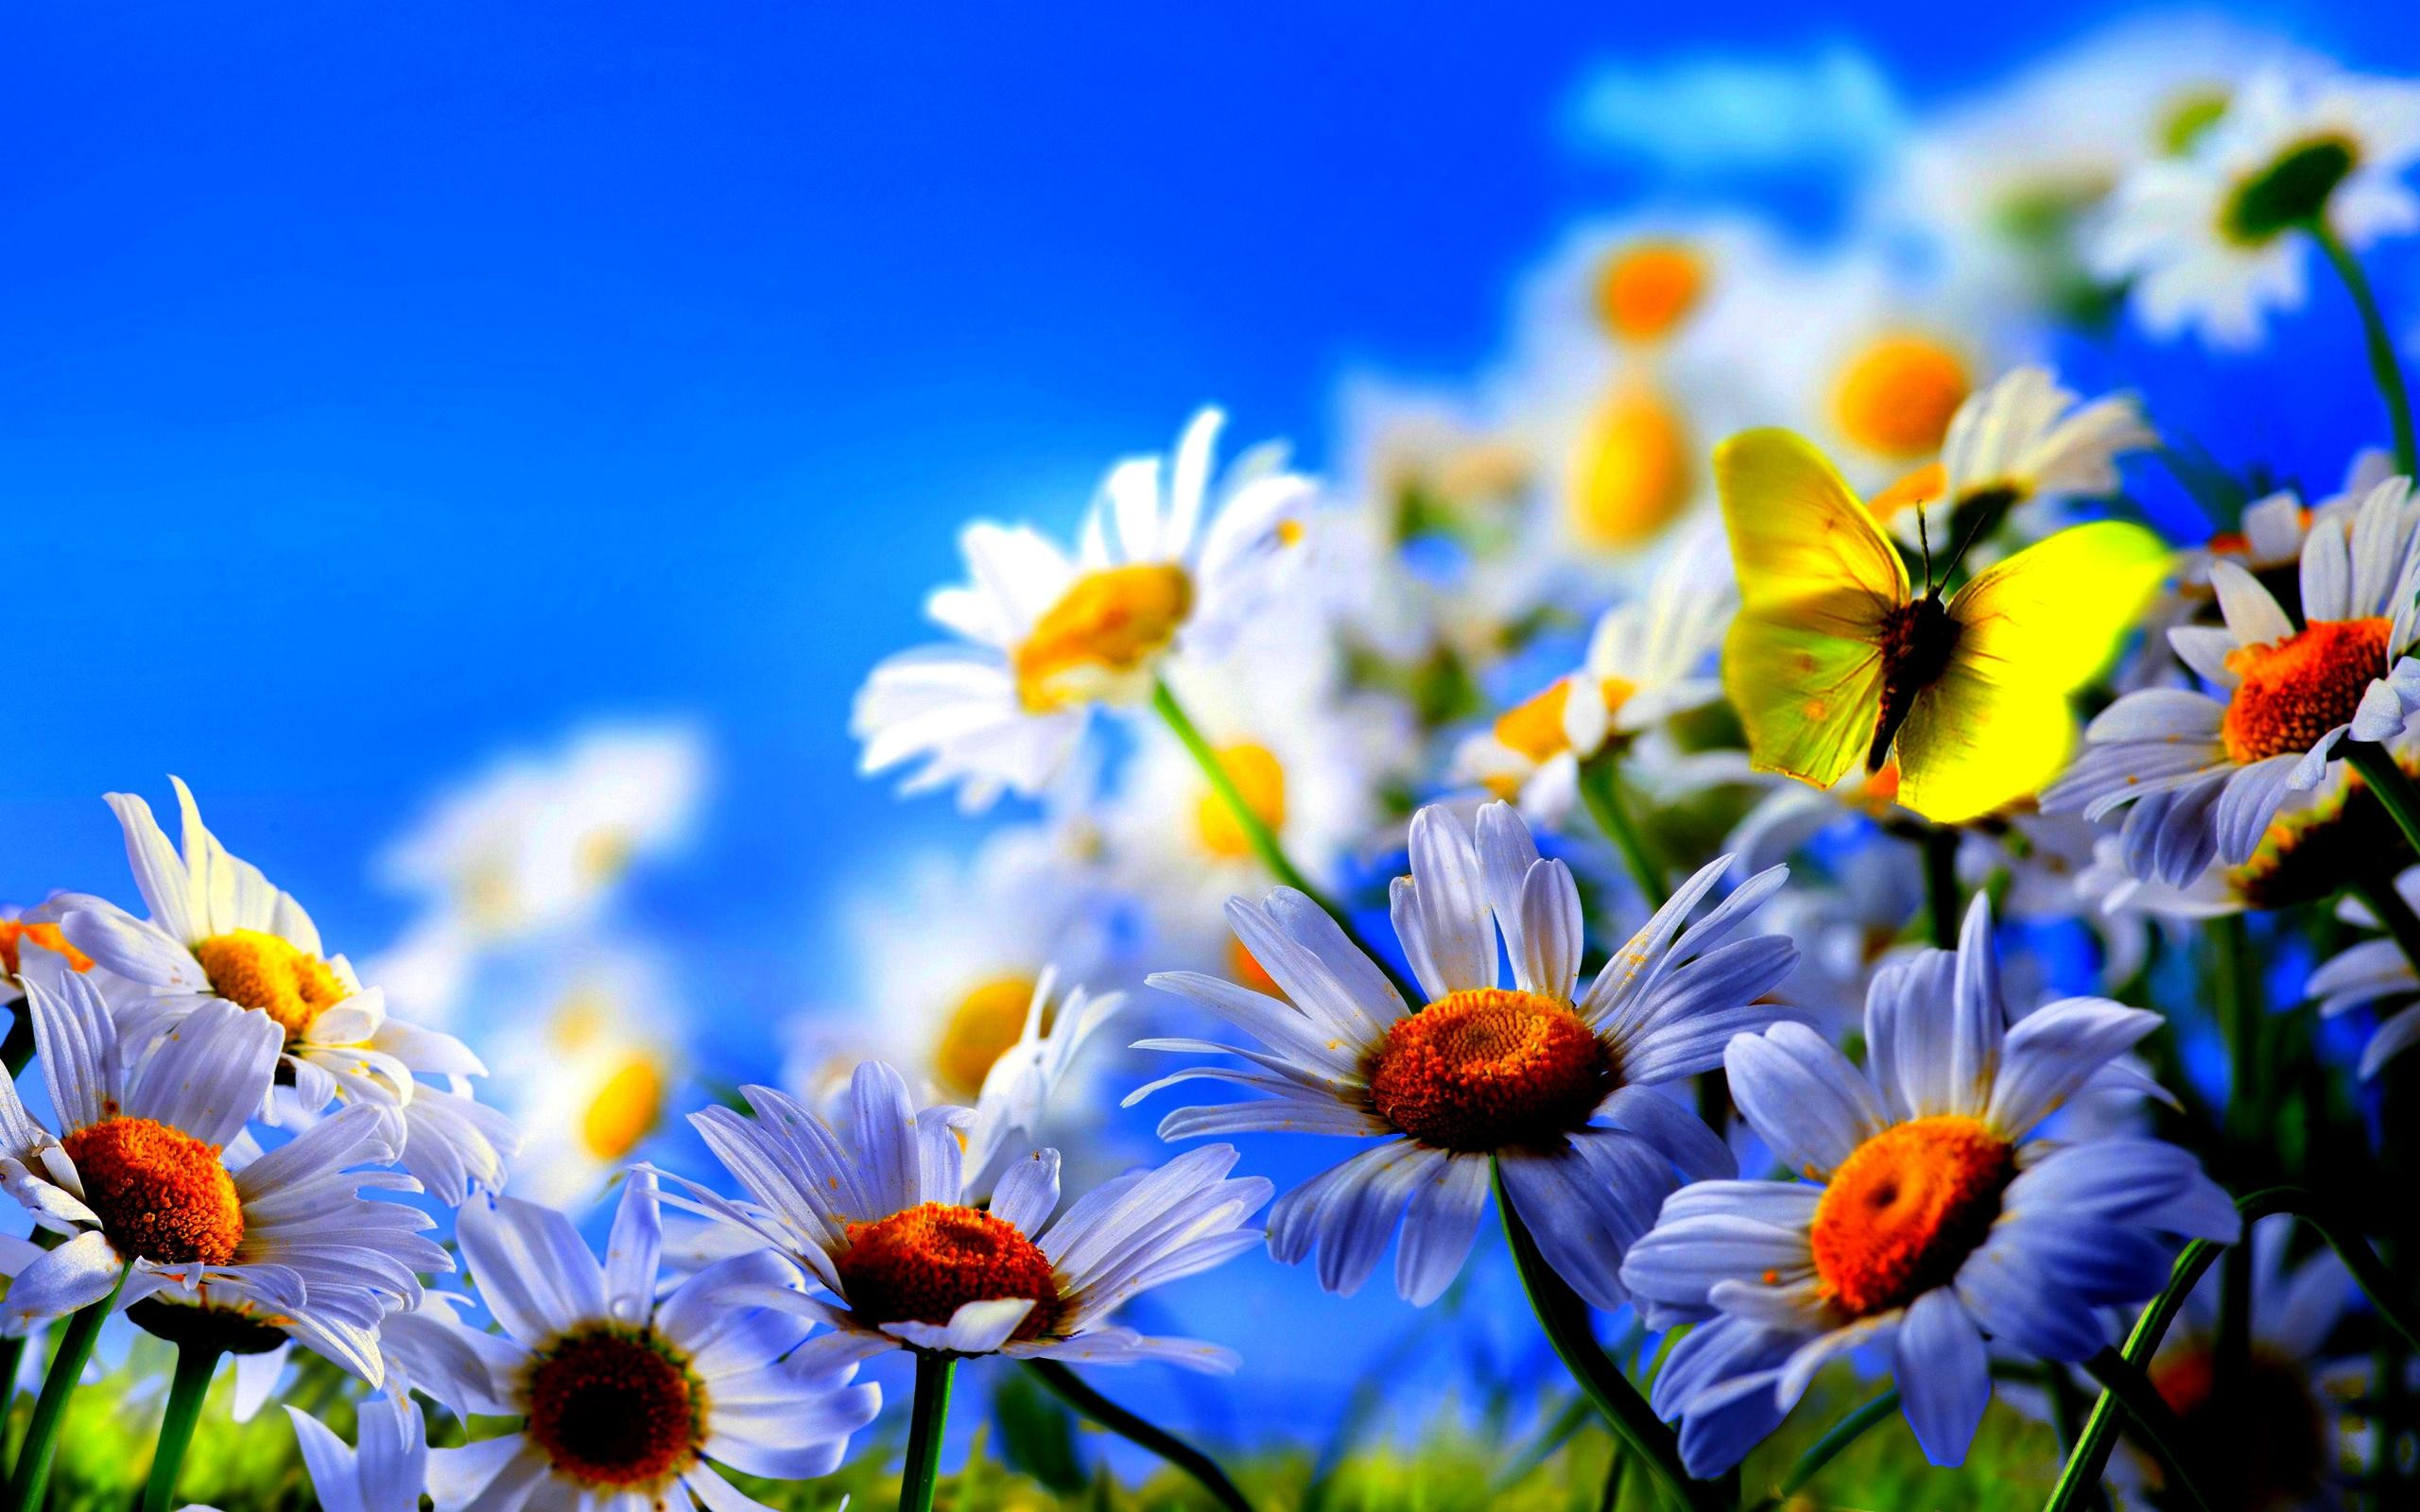 Home > Nature > Flowers & Plants > Spring flowers screensavers